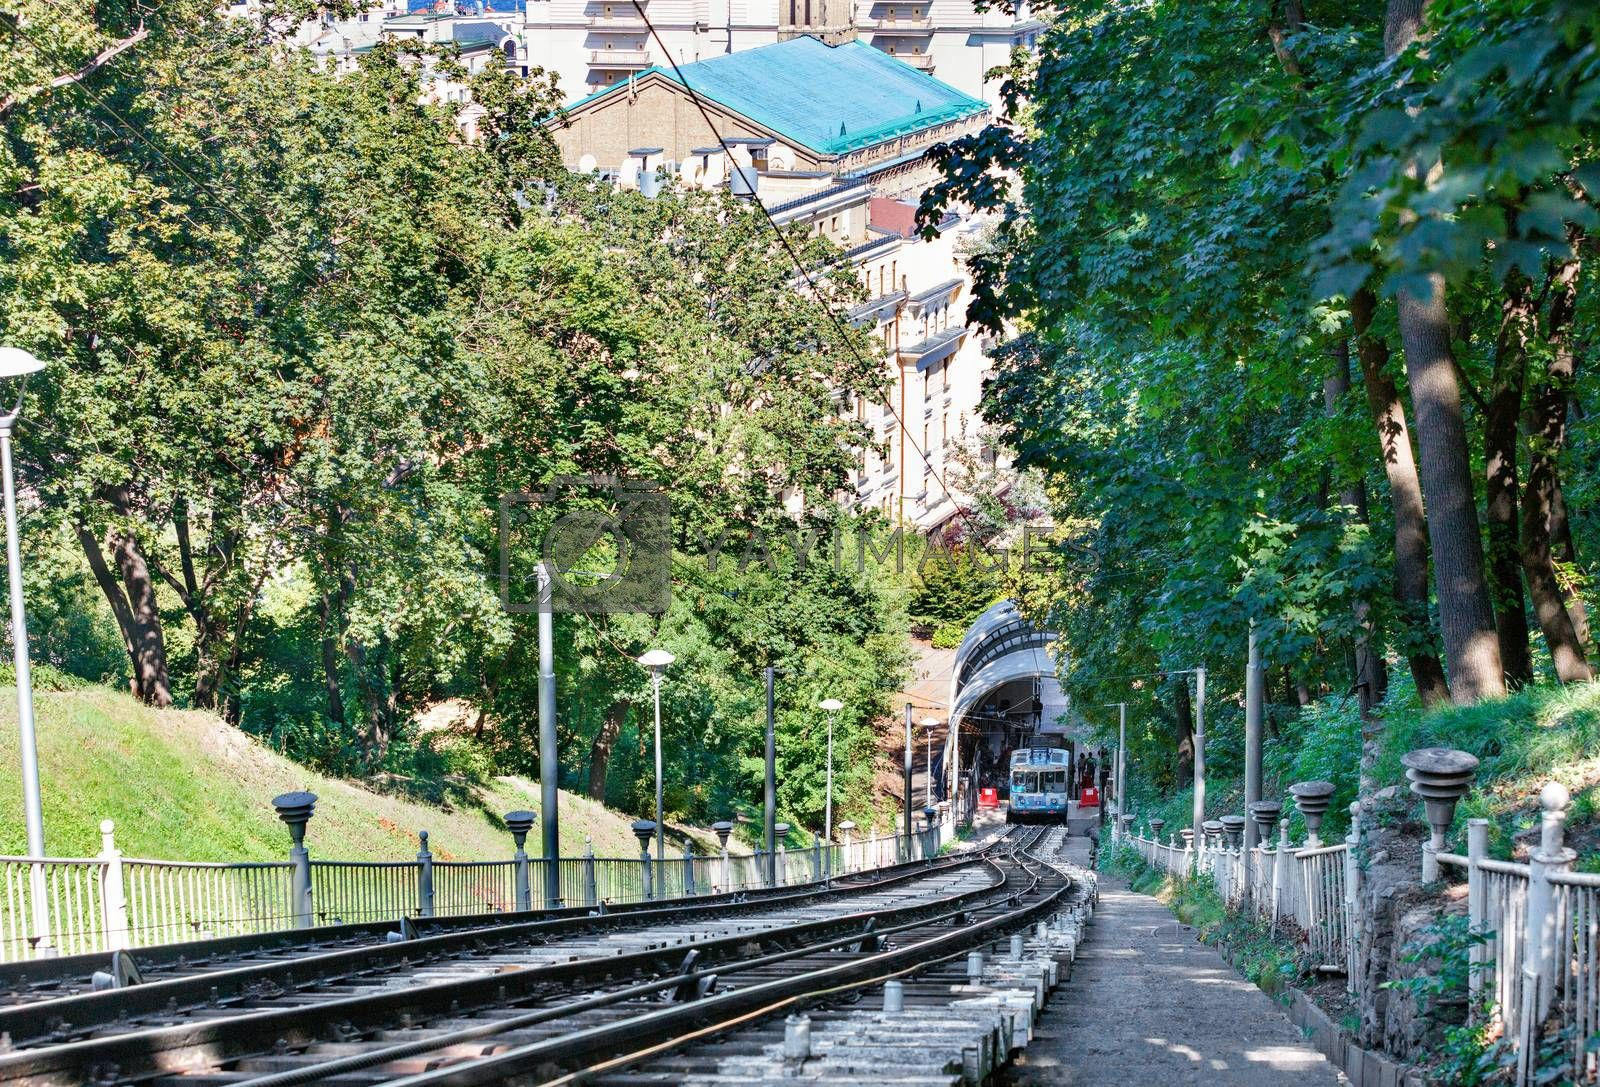 A cable funicular, surrounded by the green foliage of a summer park, picks up passengers at the bottom station to lift them up the mountainside.